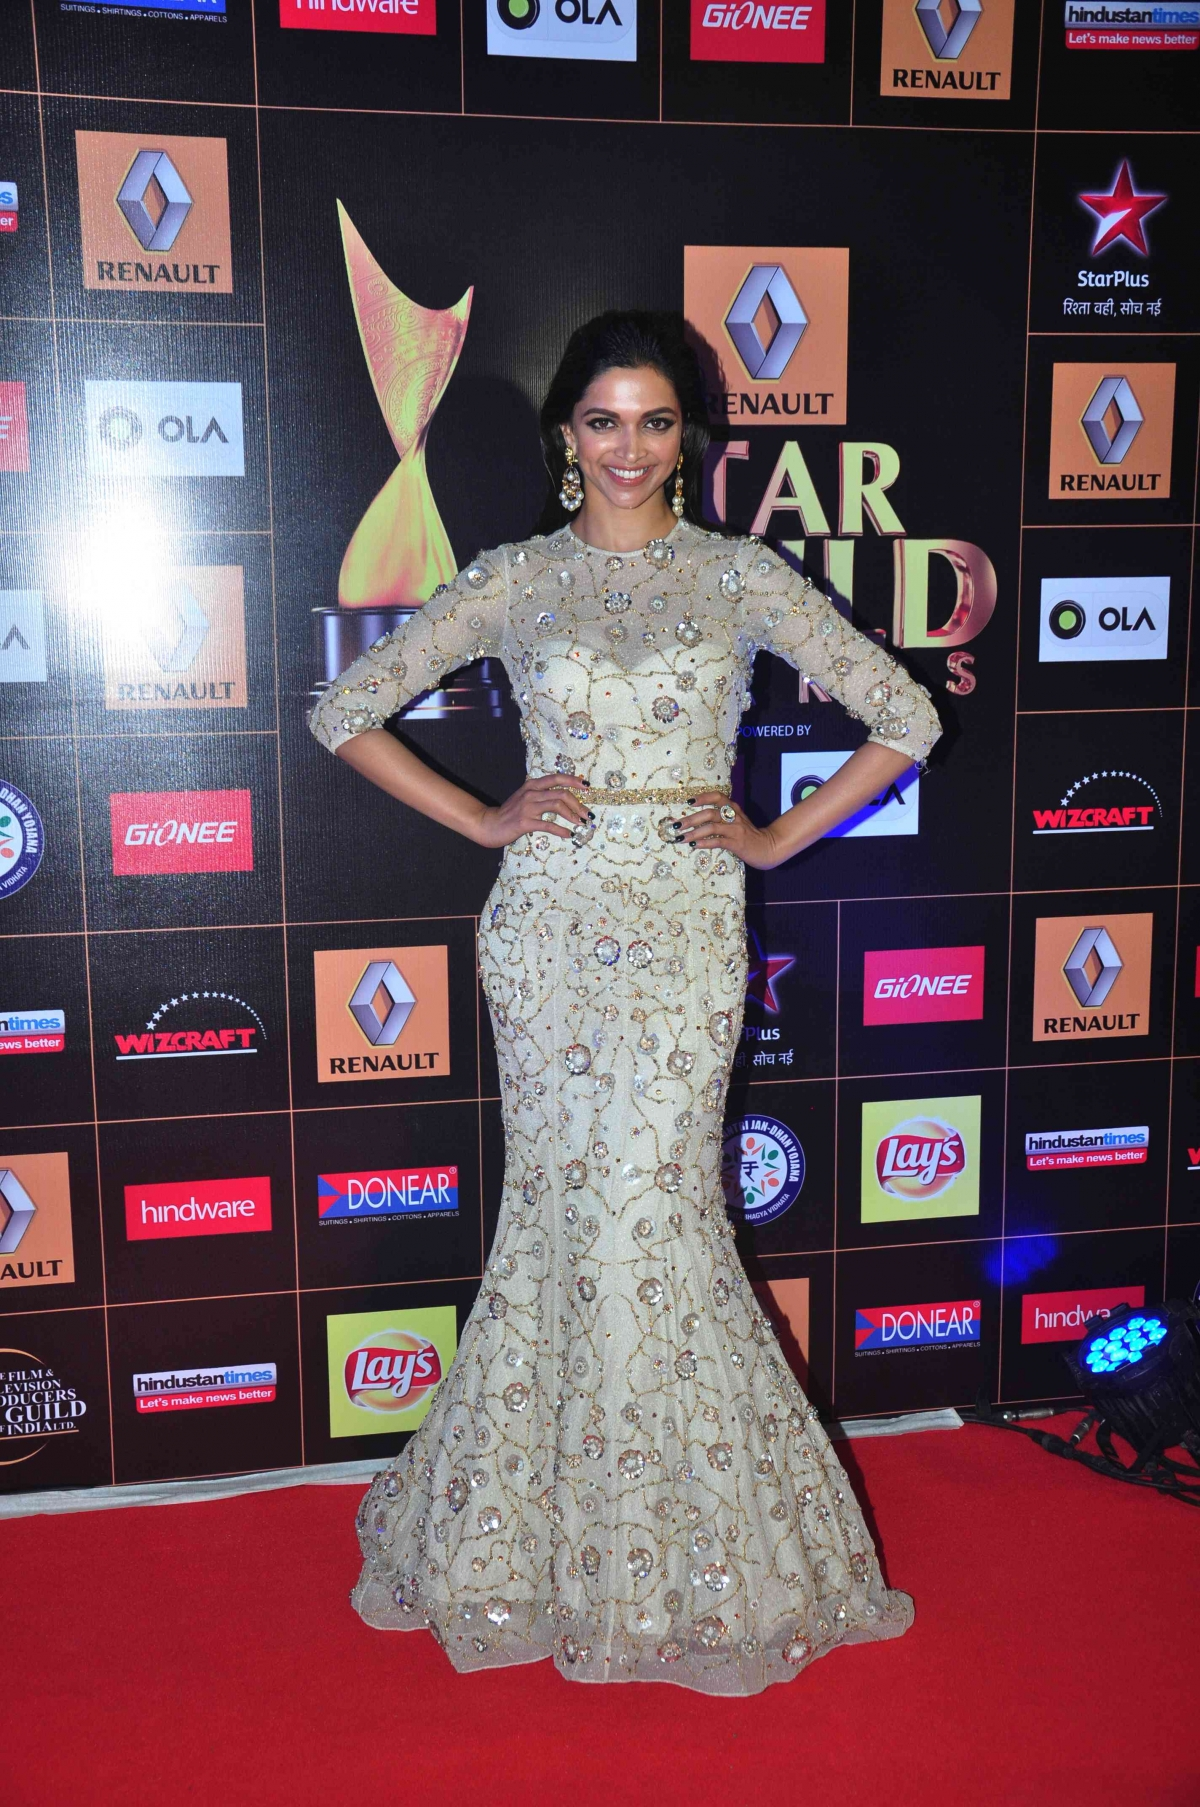 Star Guild Awards 2015: Celebs Sizzle on Red Carpet [